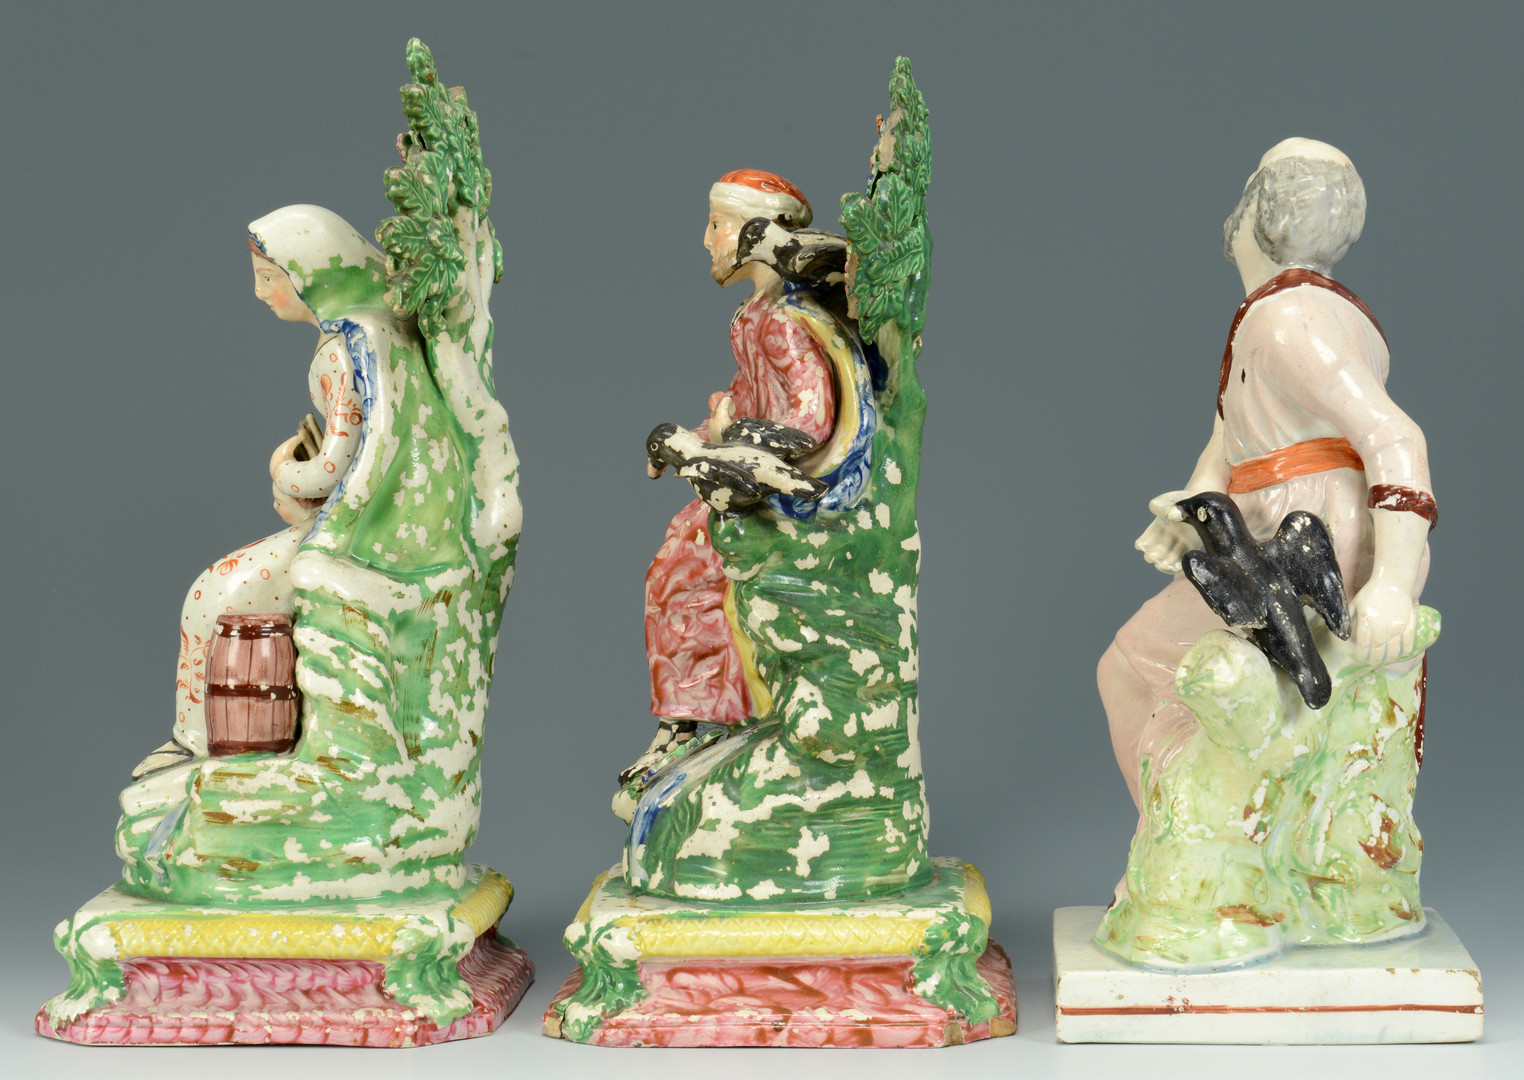 Lot 701: 3 Biblical figures att. Wood, Salt